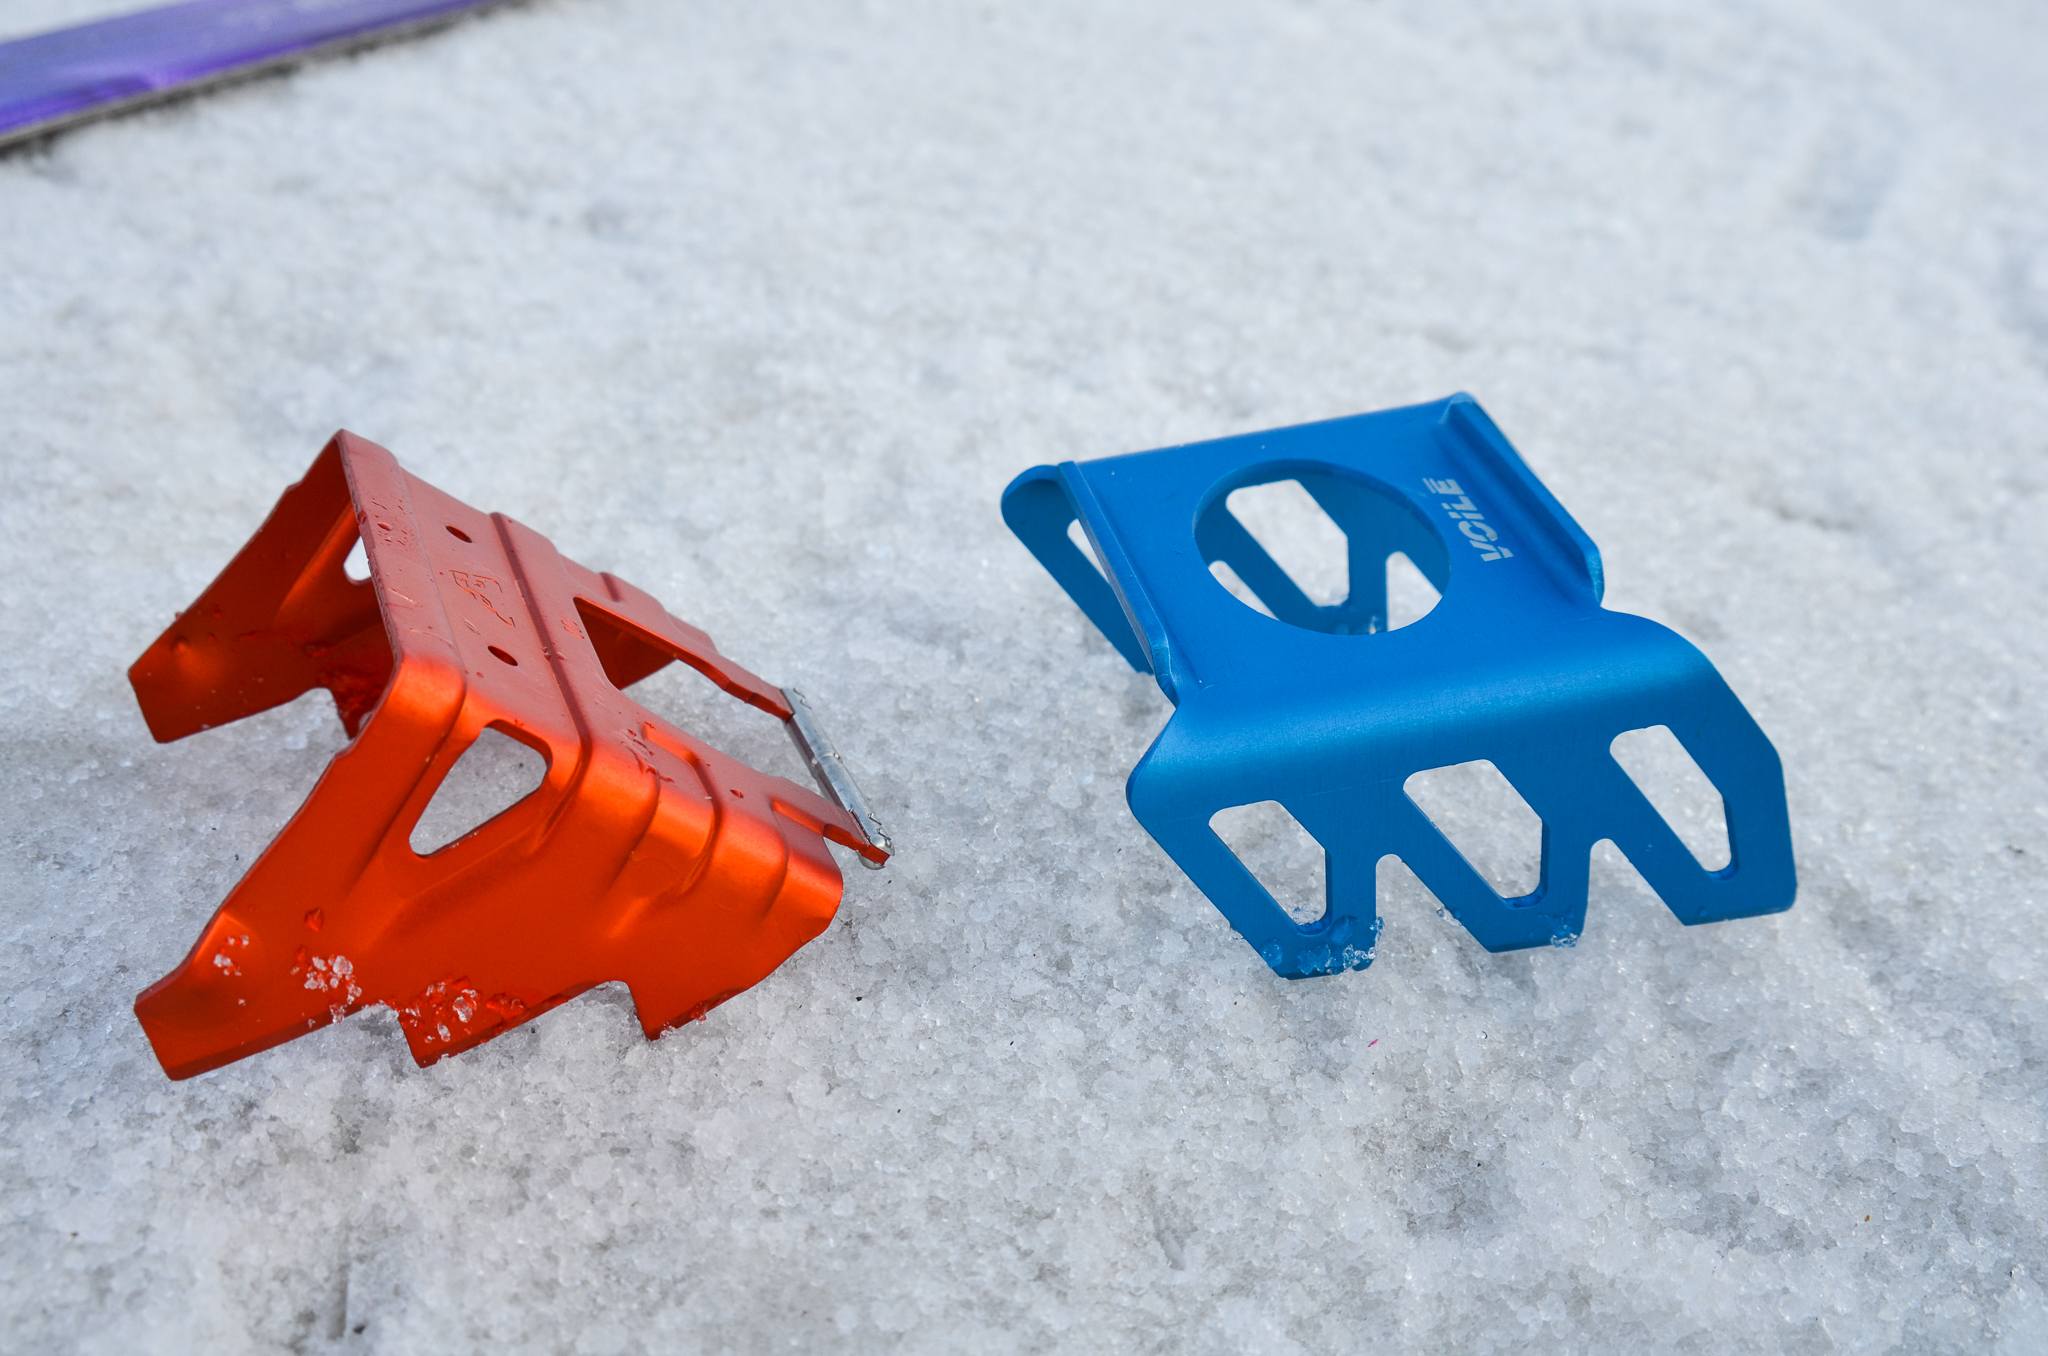 voile_ski_crampons_side_by_side_3